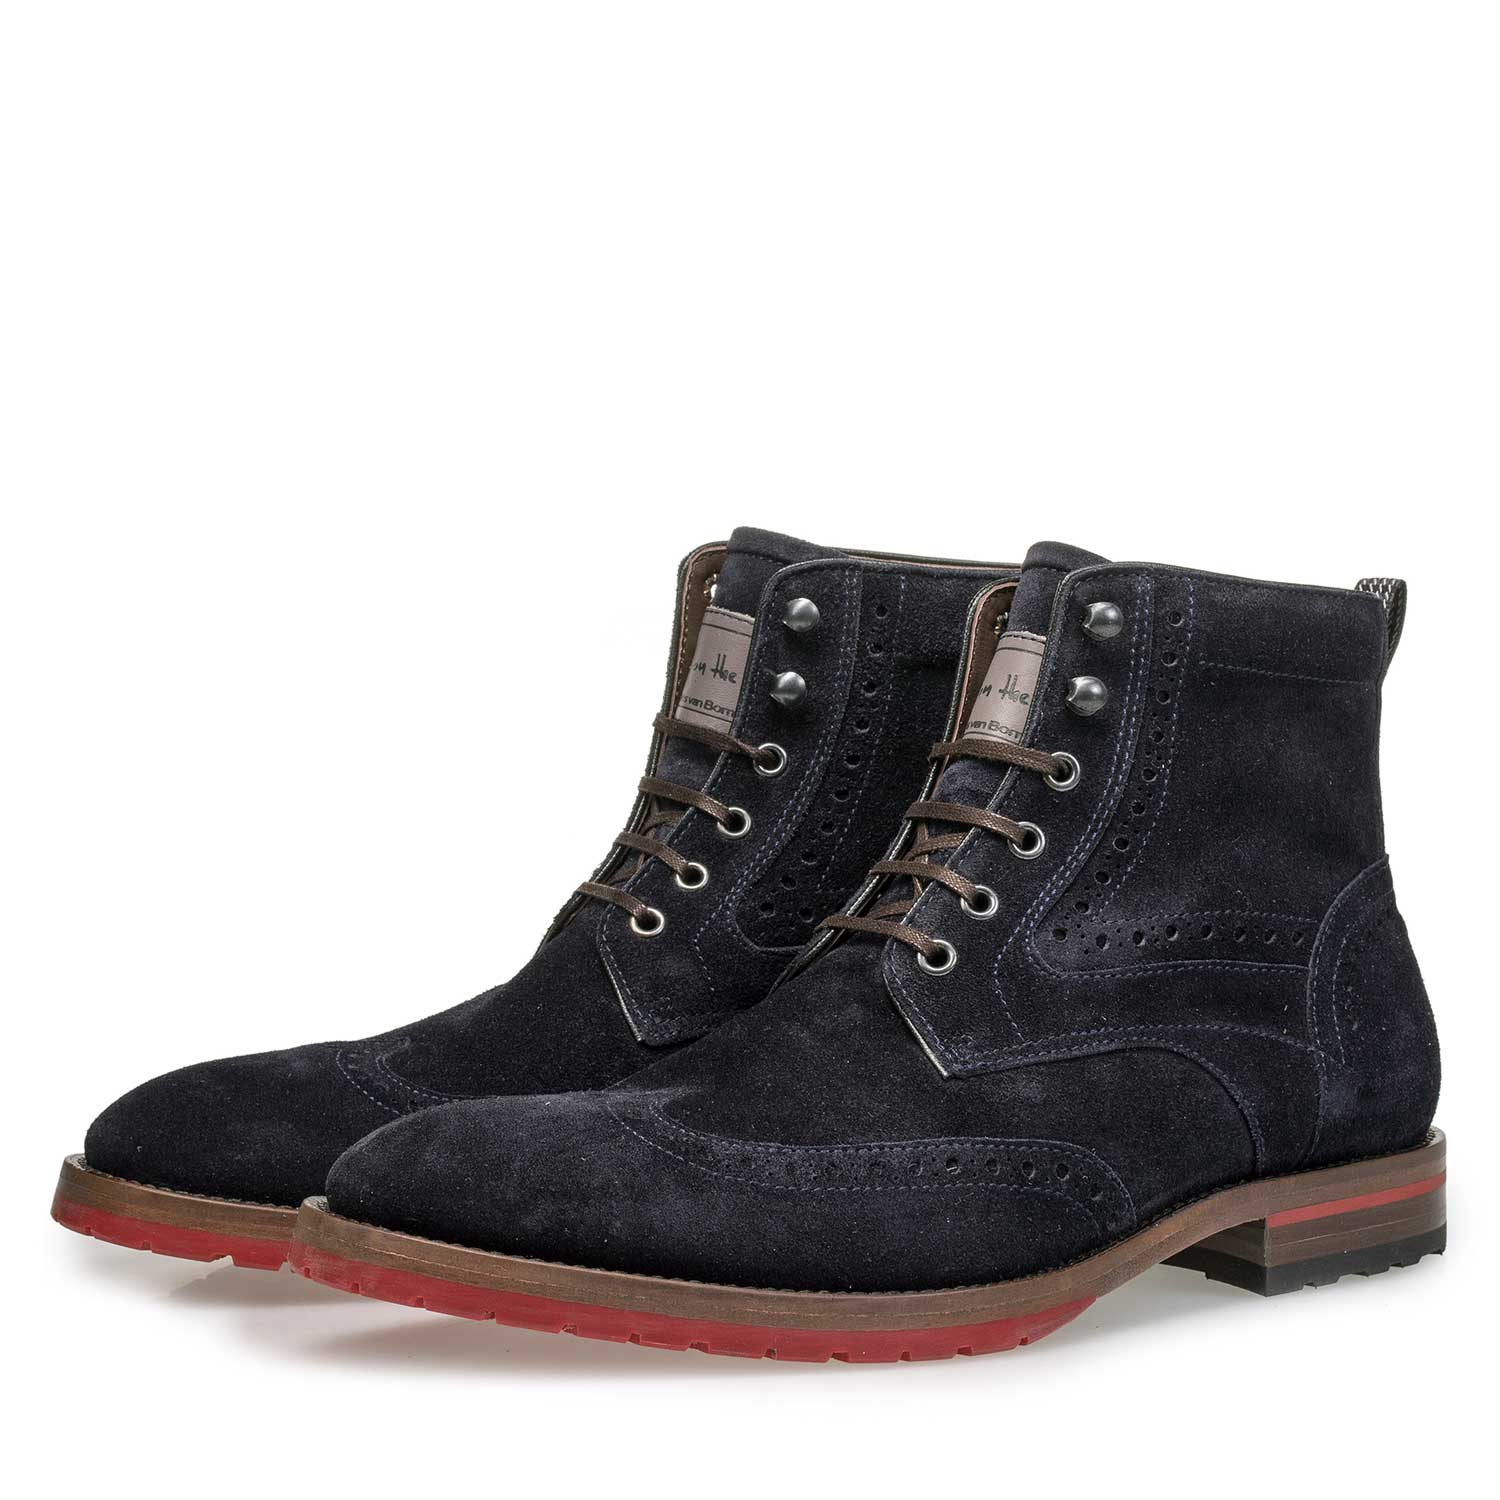 10295/07 - Blue suede leather lace boot with red outsole